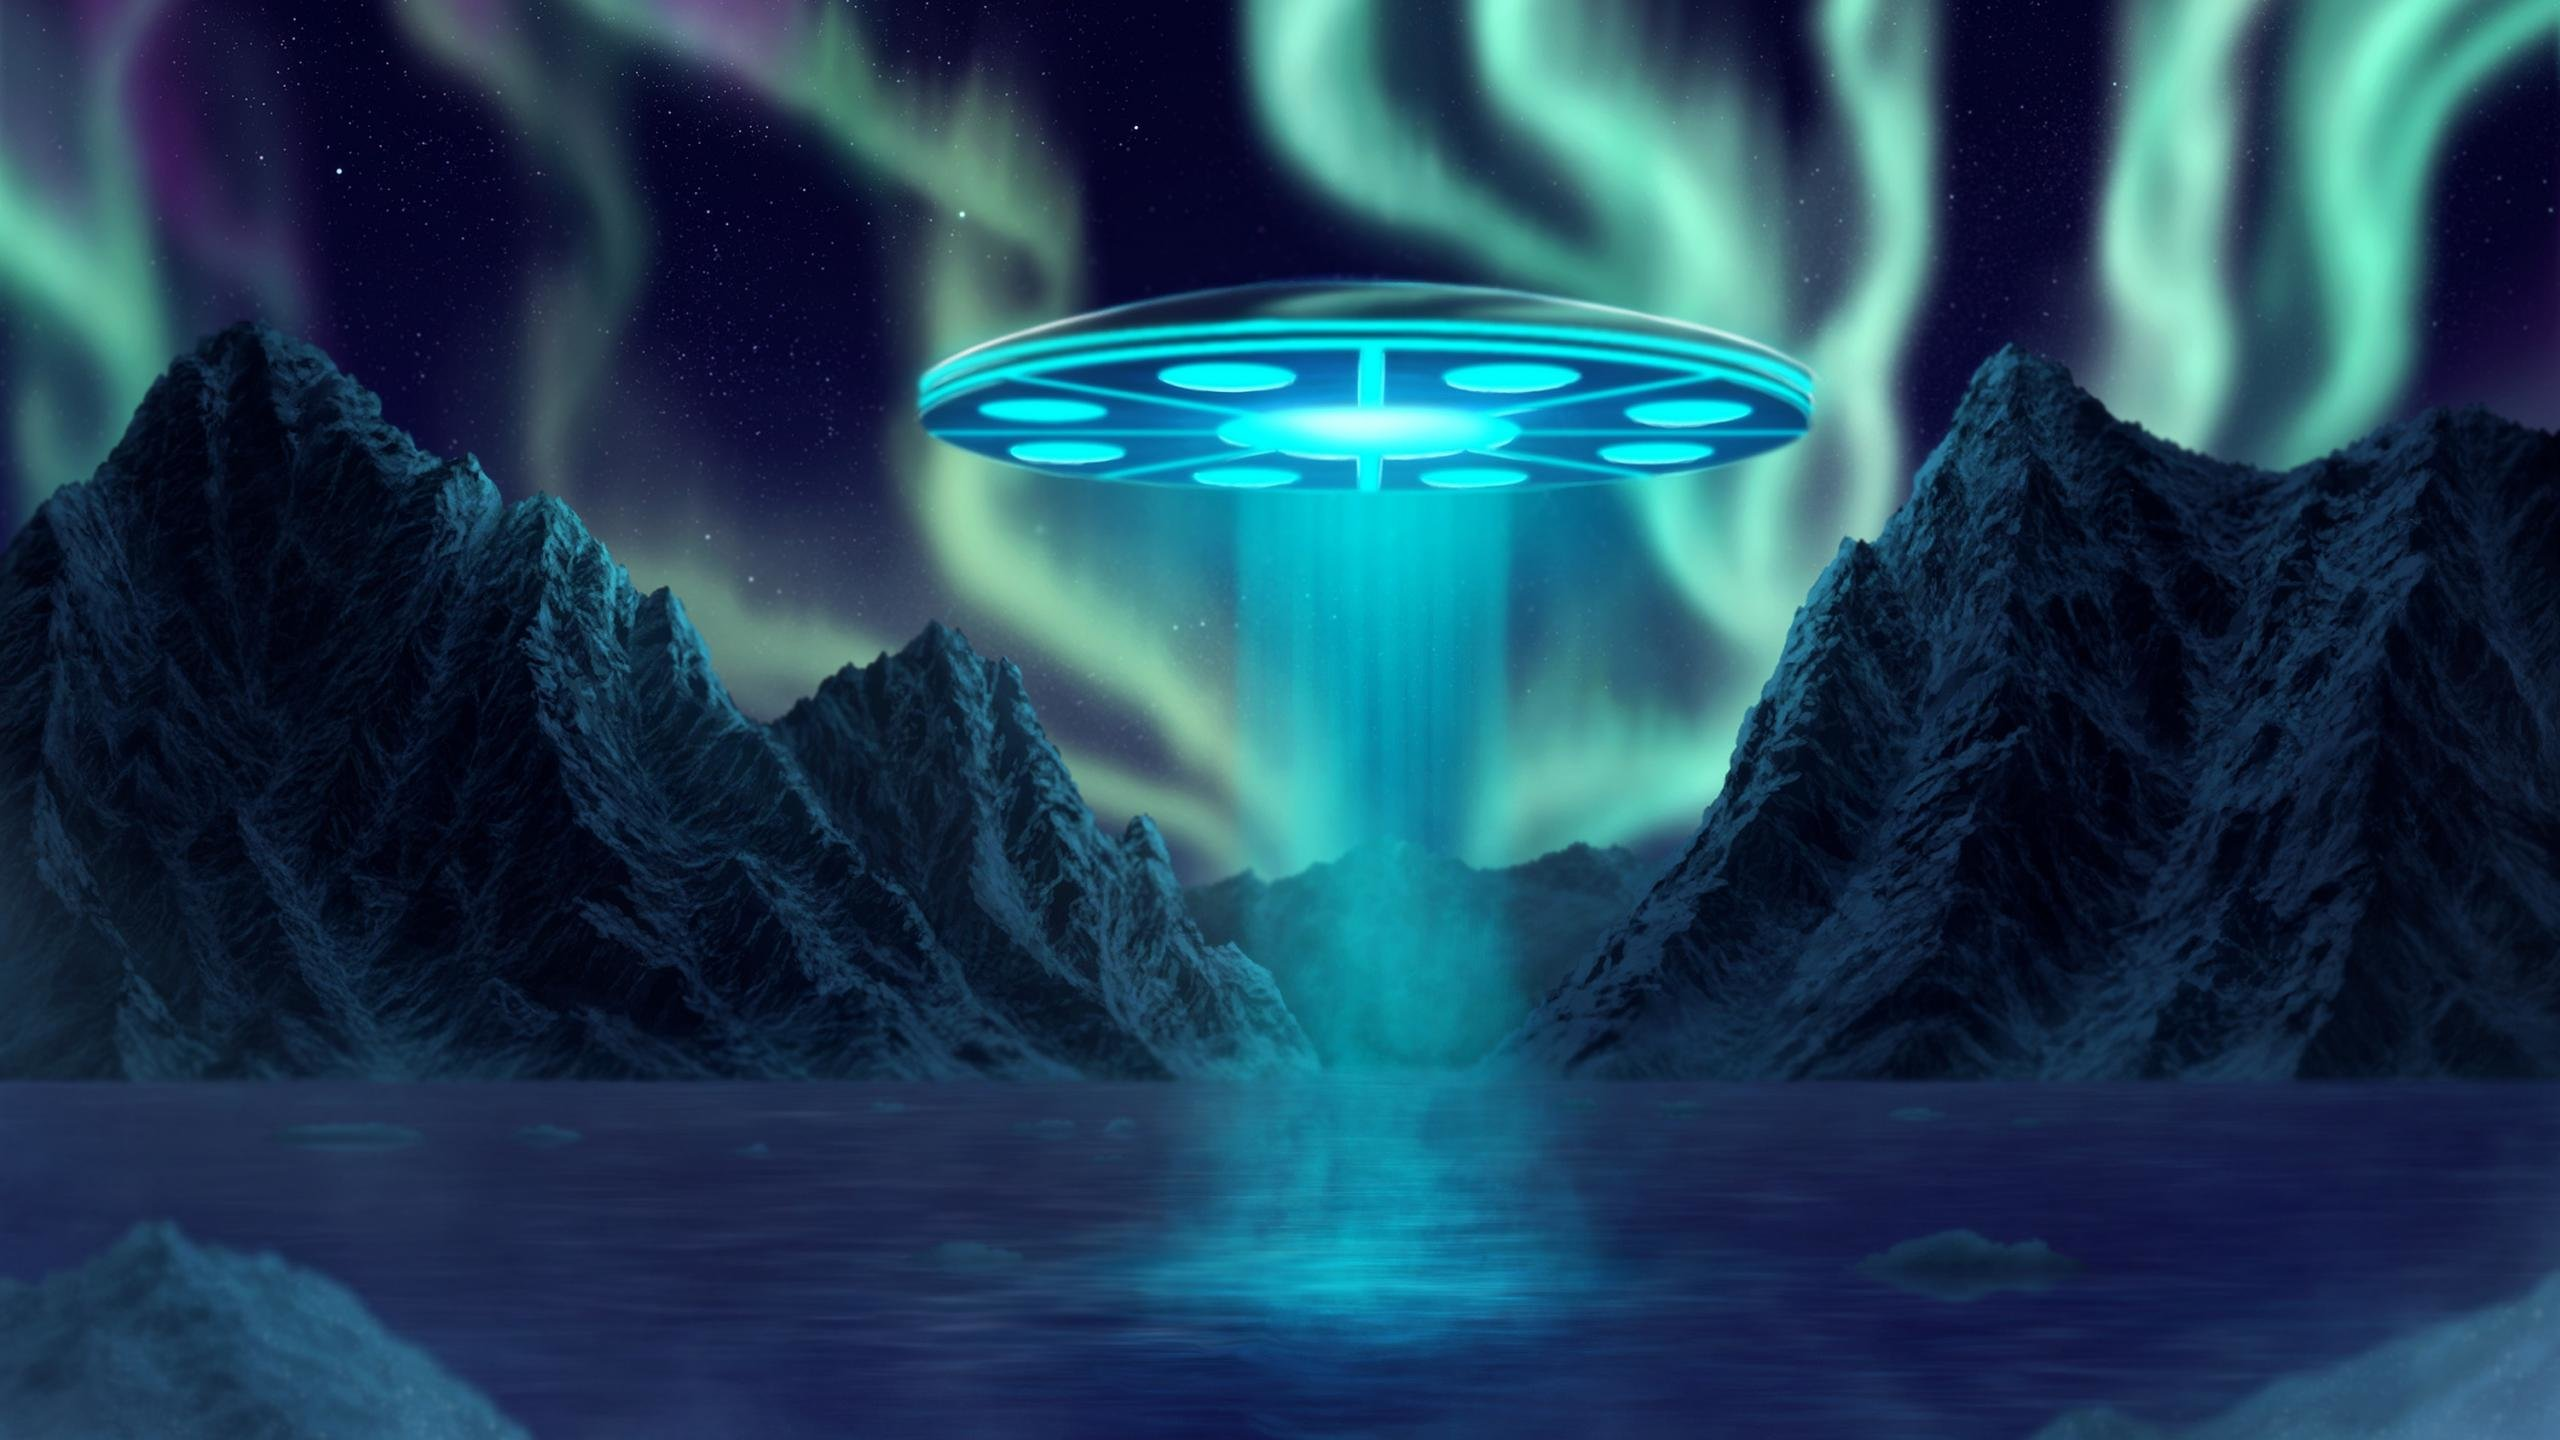 Awesome Ufo free wallpaper ID:48552 for hd 2560x1440 computer